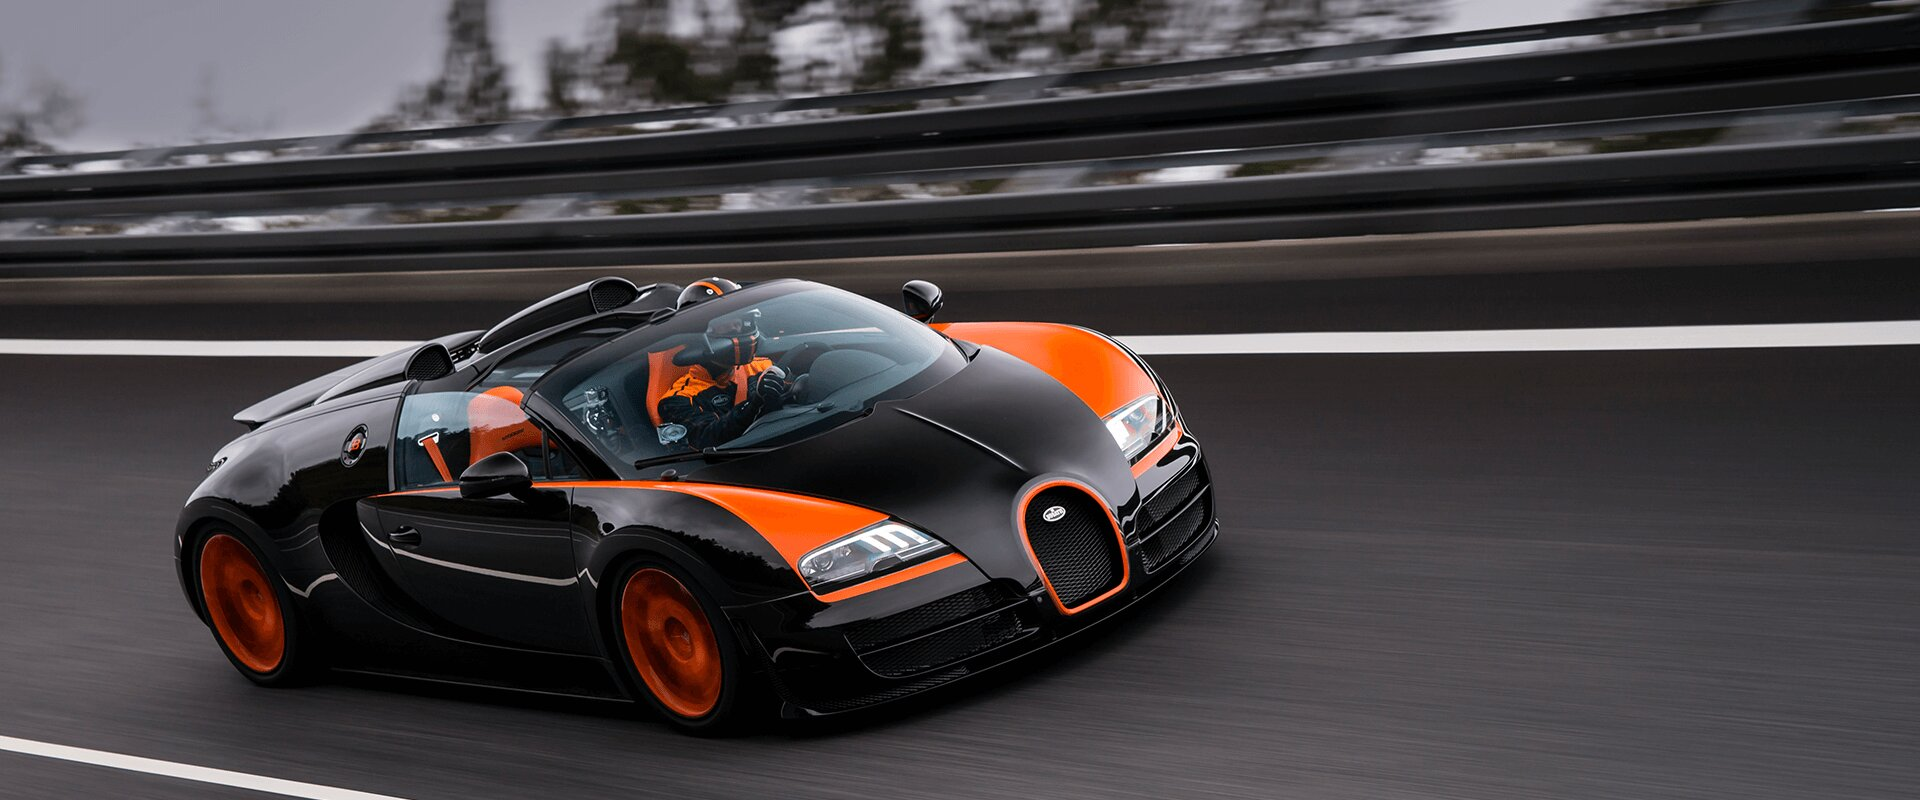 Charmant BUGATTI Veyron Technology